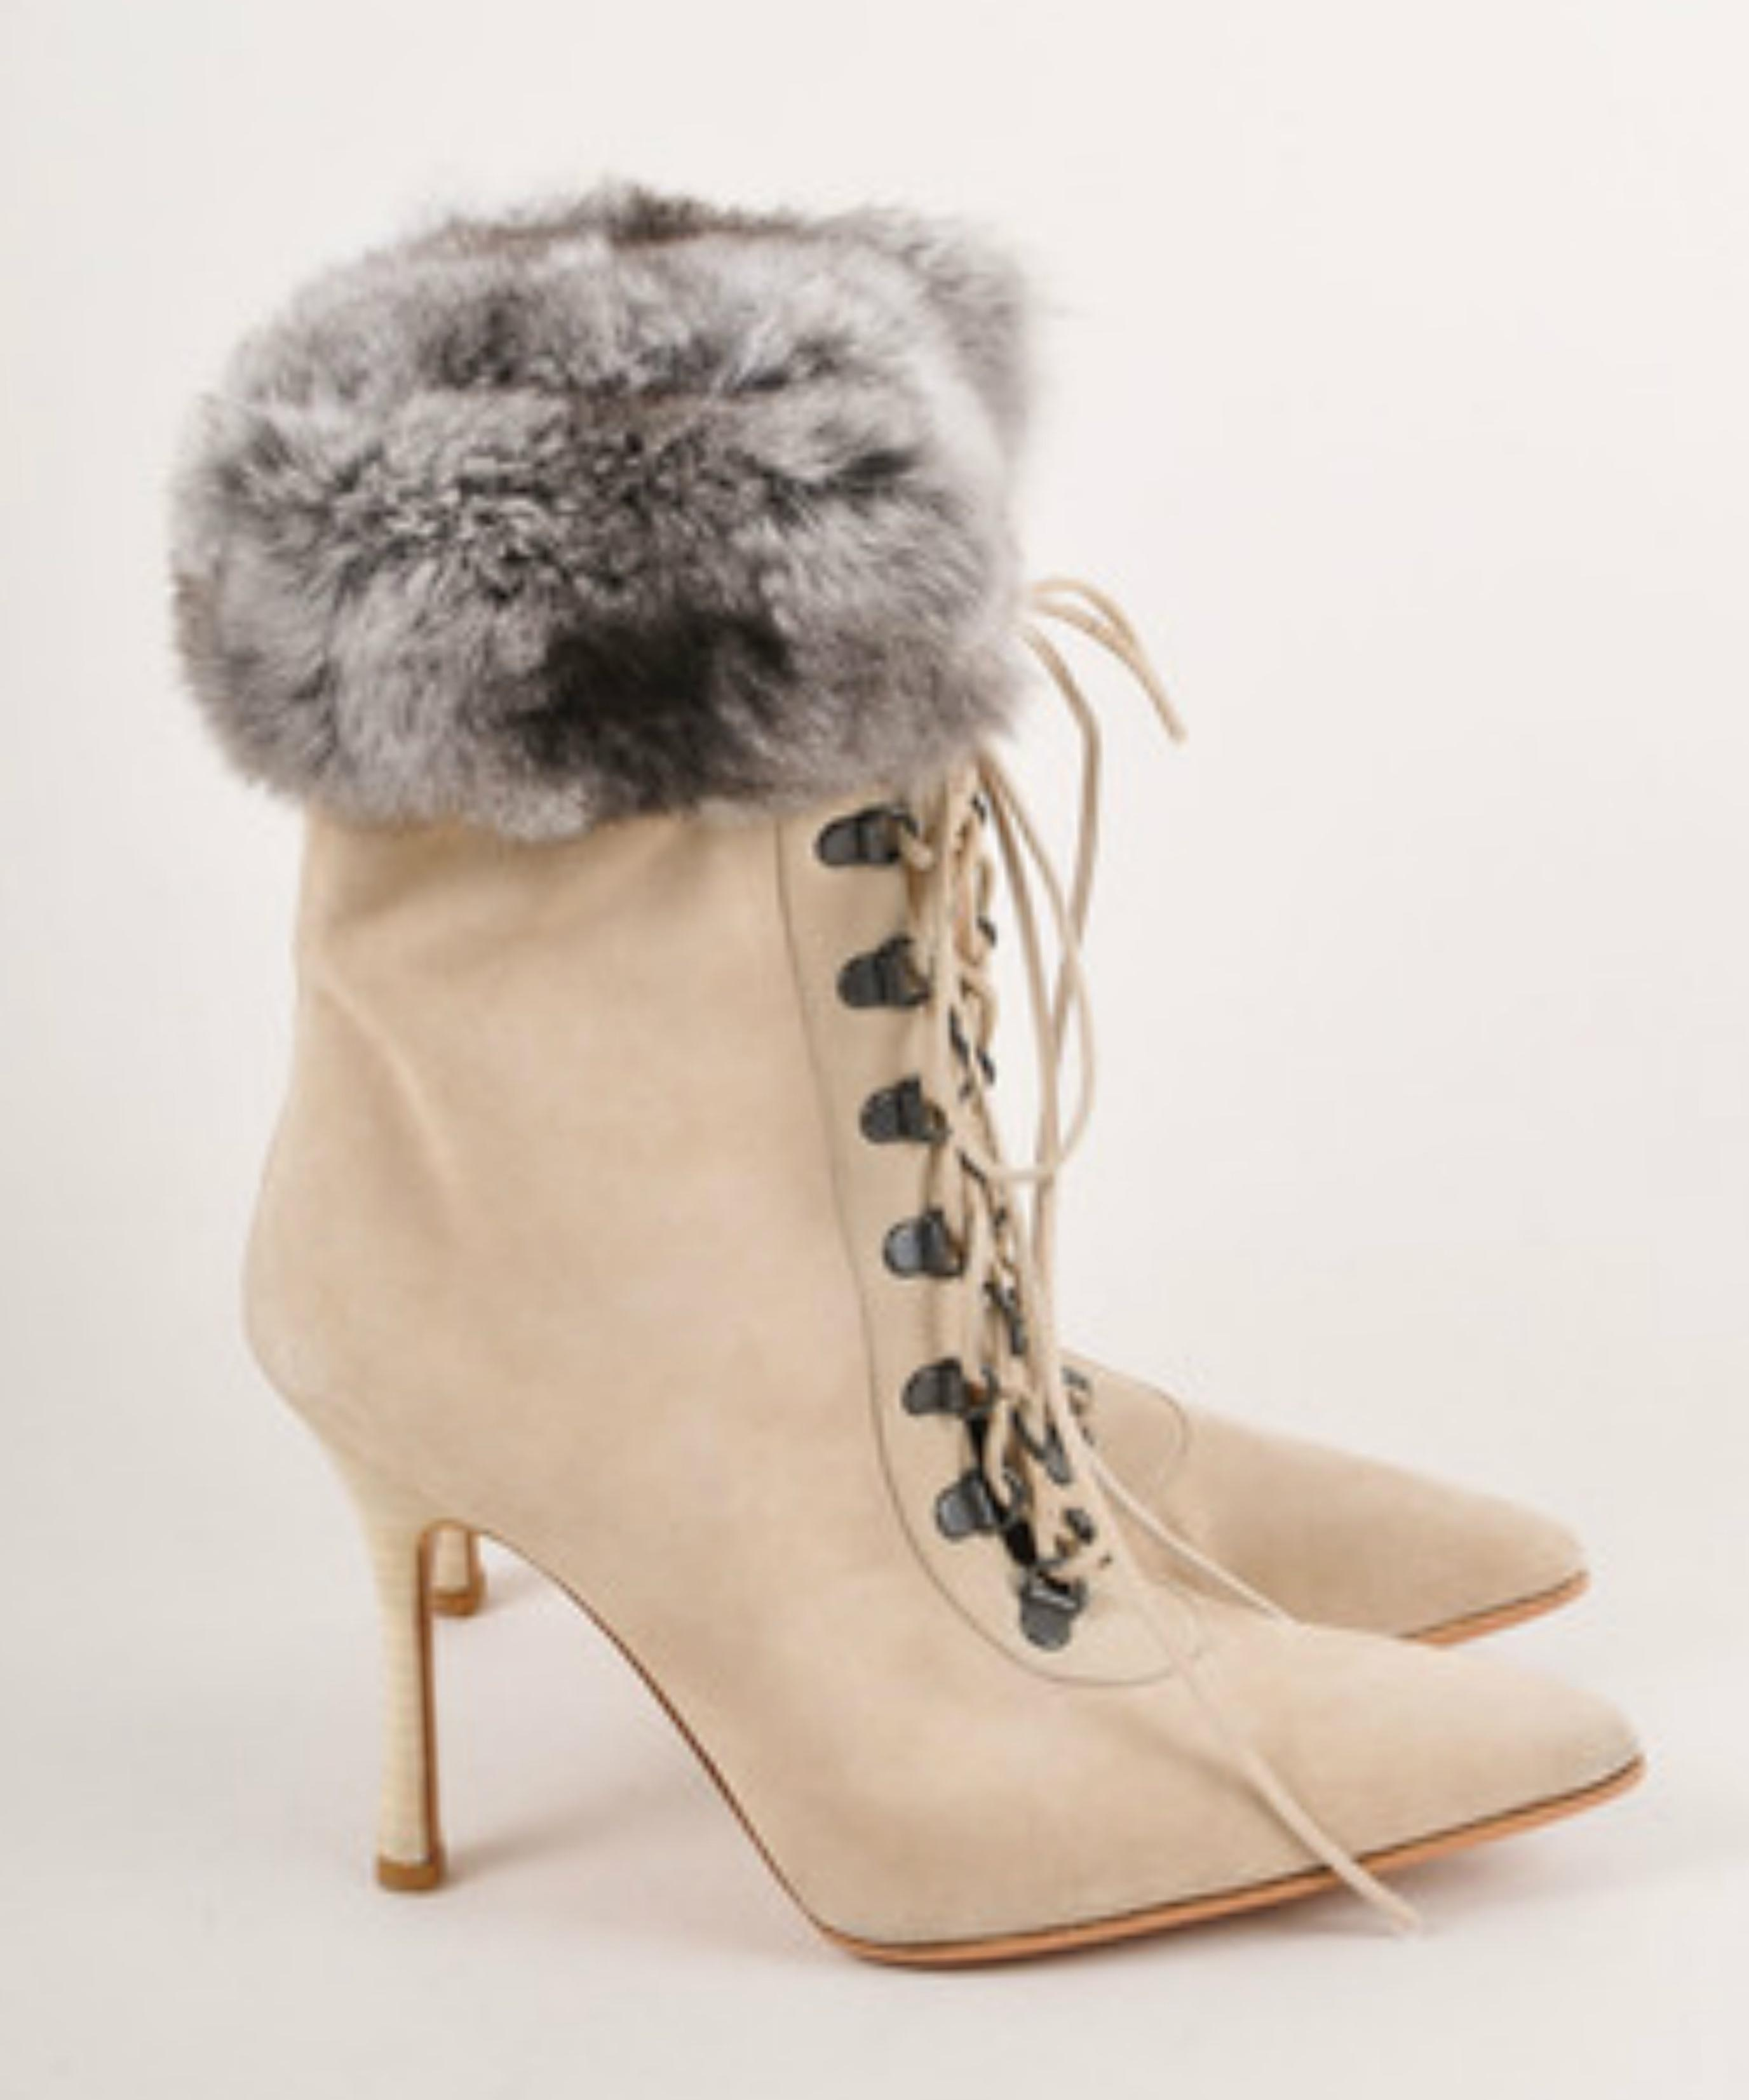 Manolo Blahnik Cloth Lace Up Boots